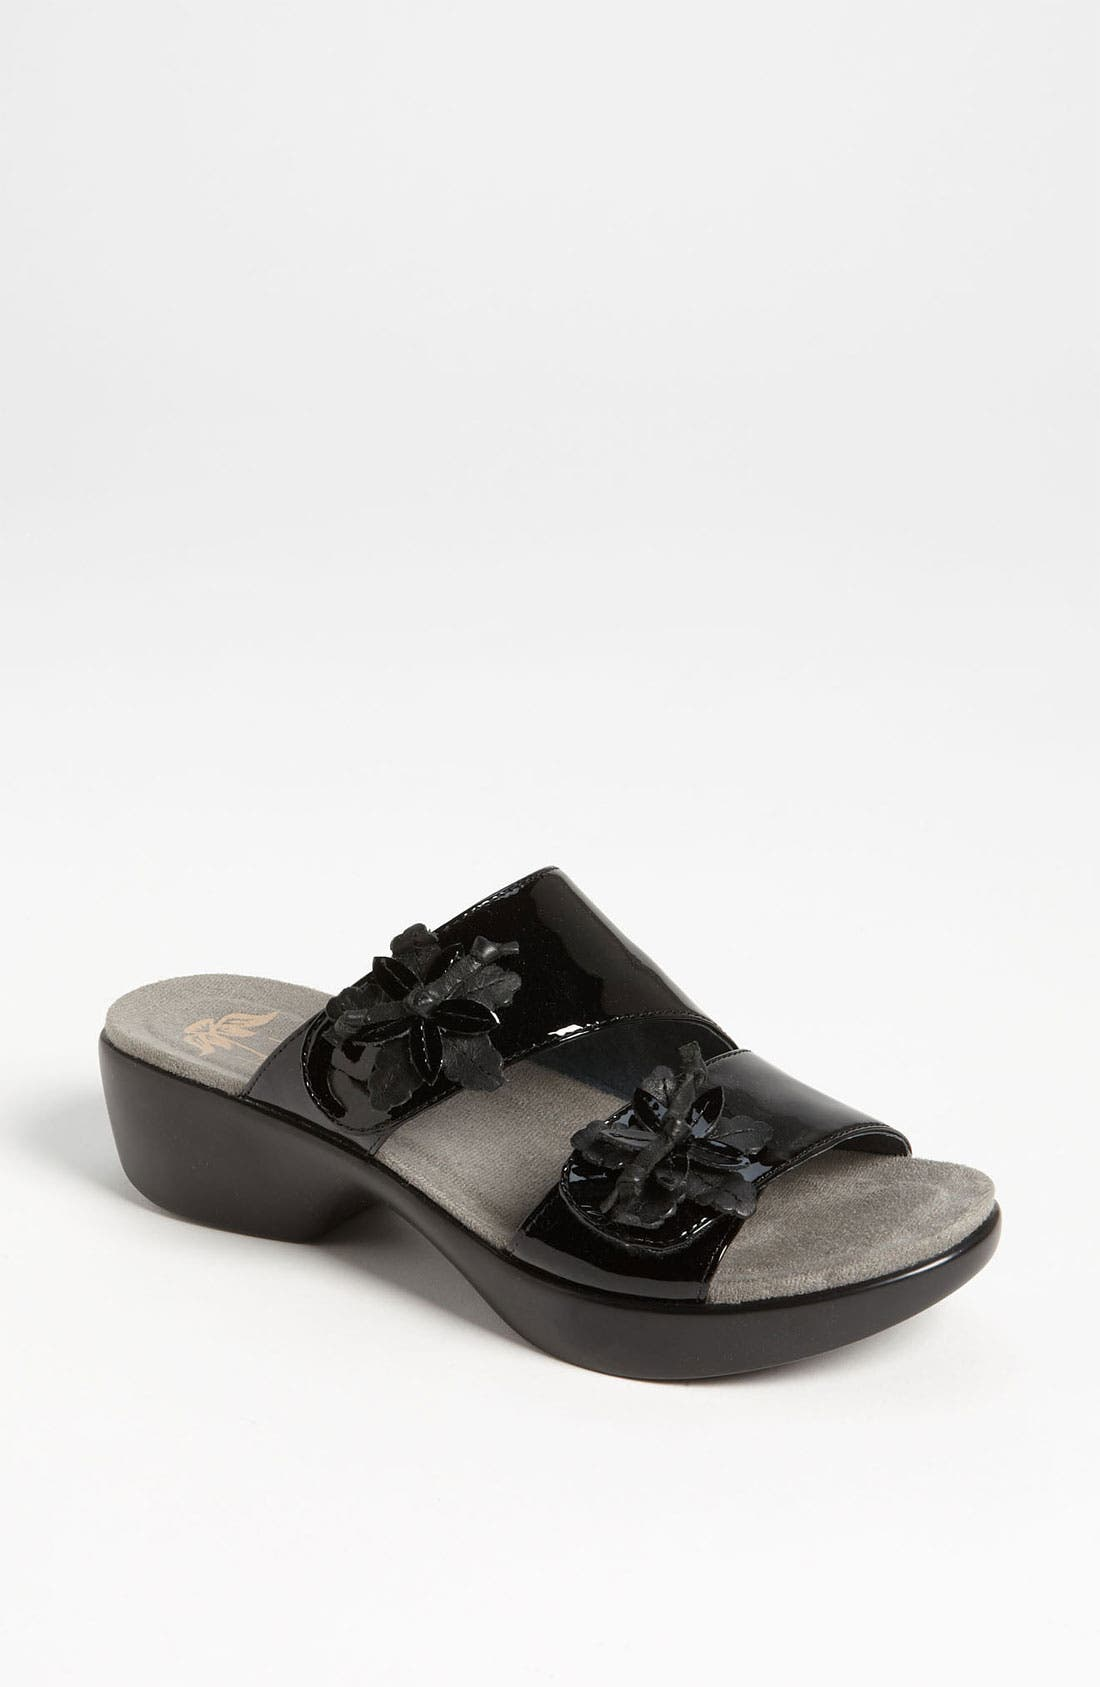 Alternate Image 1 Selected - Dansko 'Donna' Sandal (Online Only)